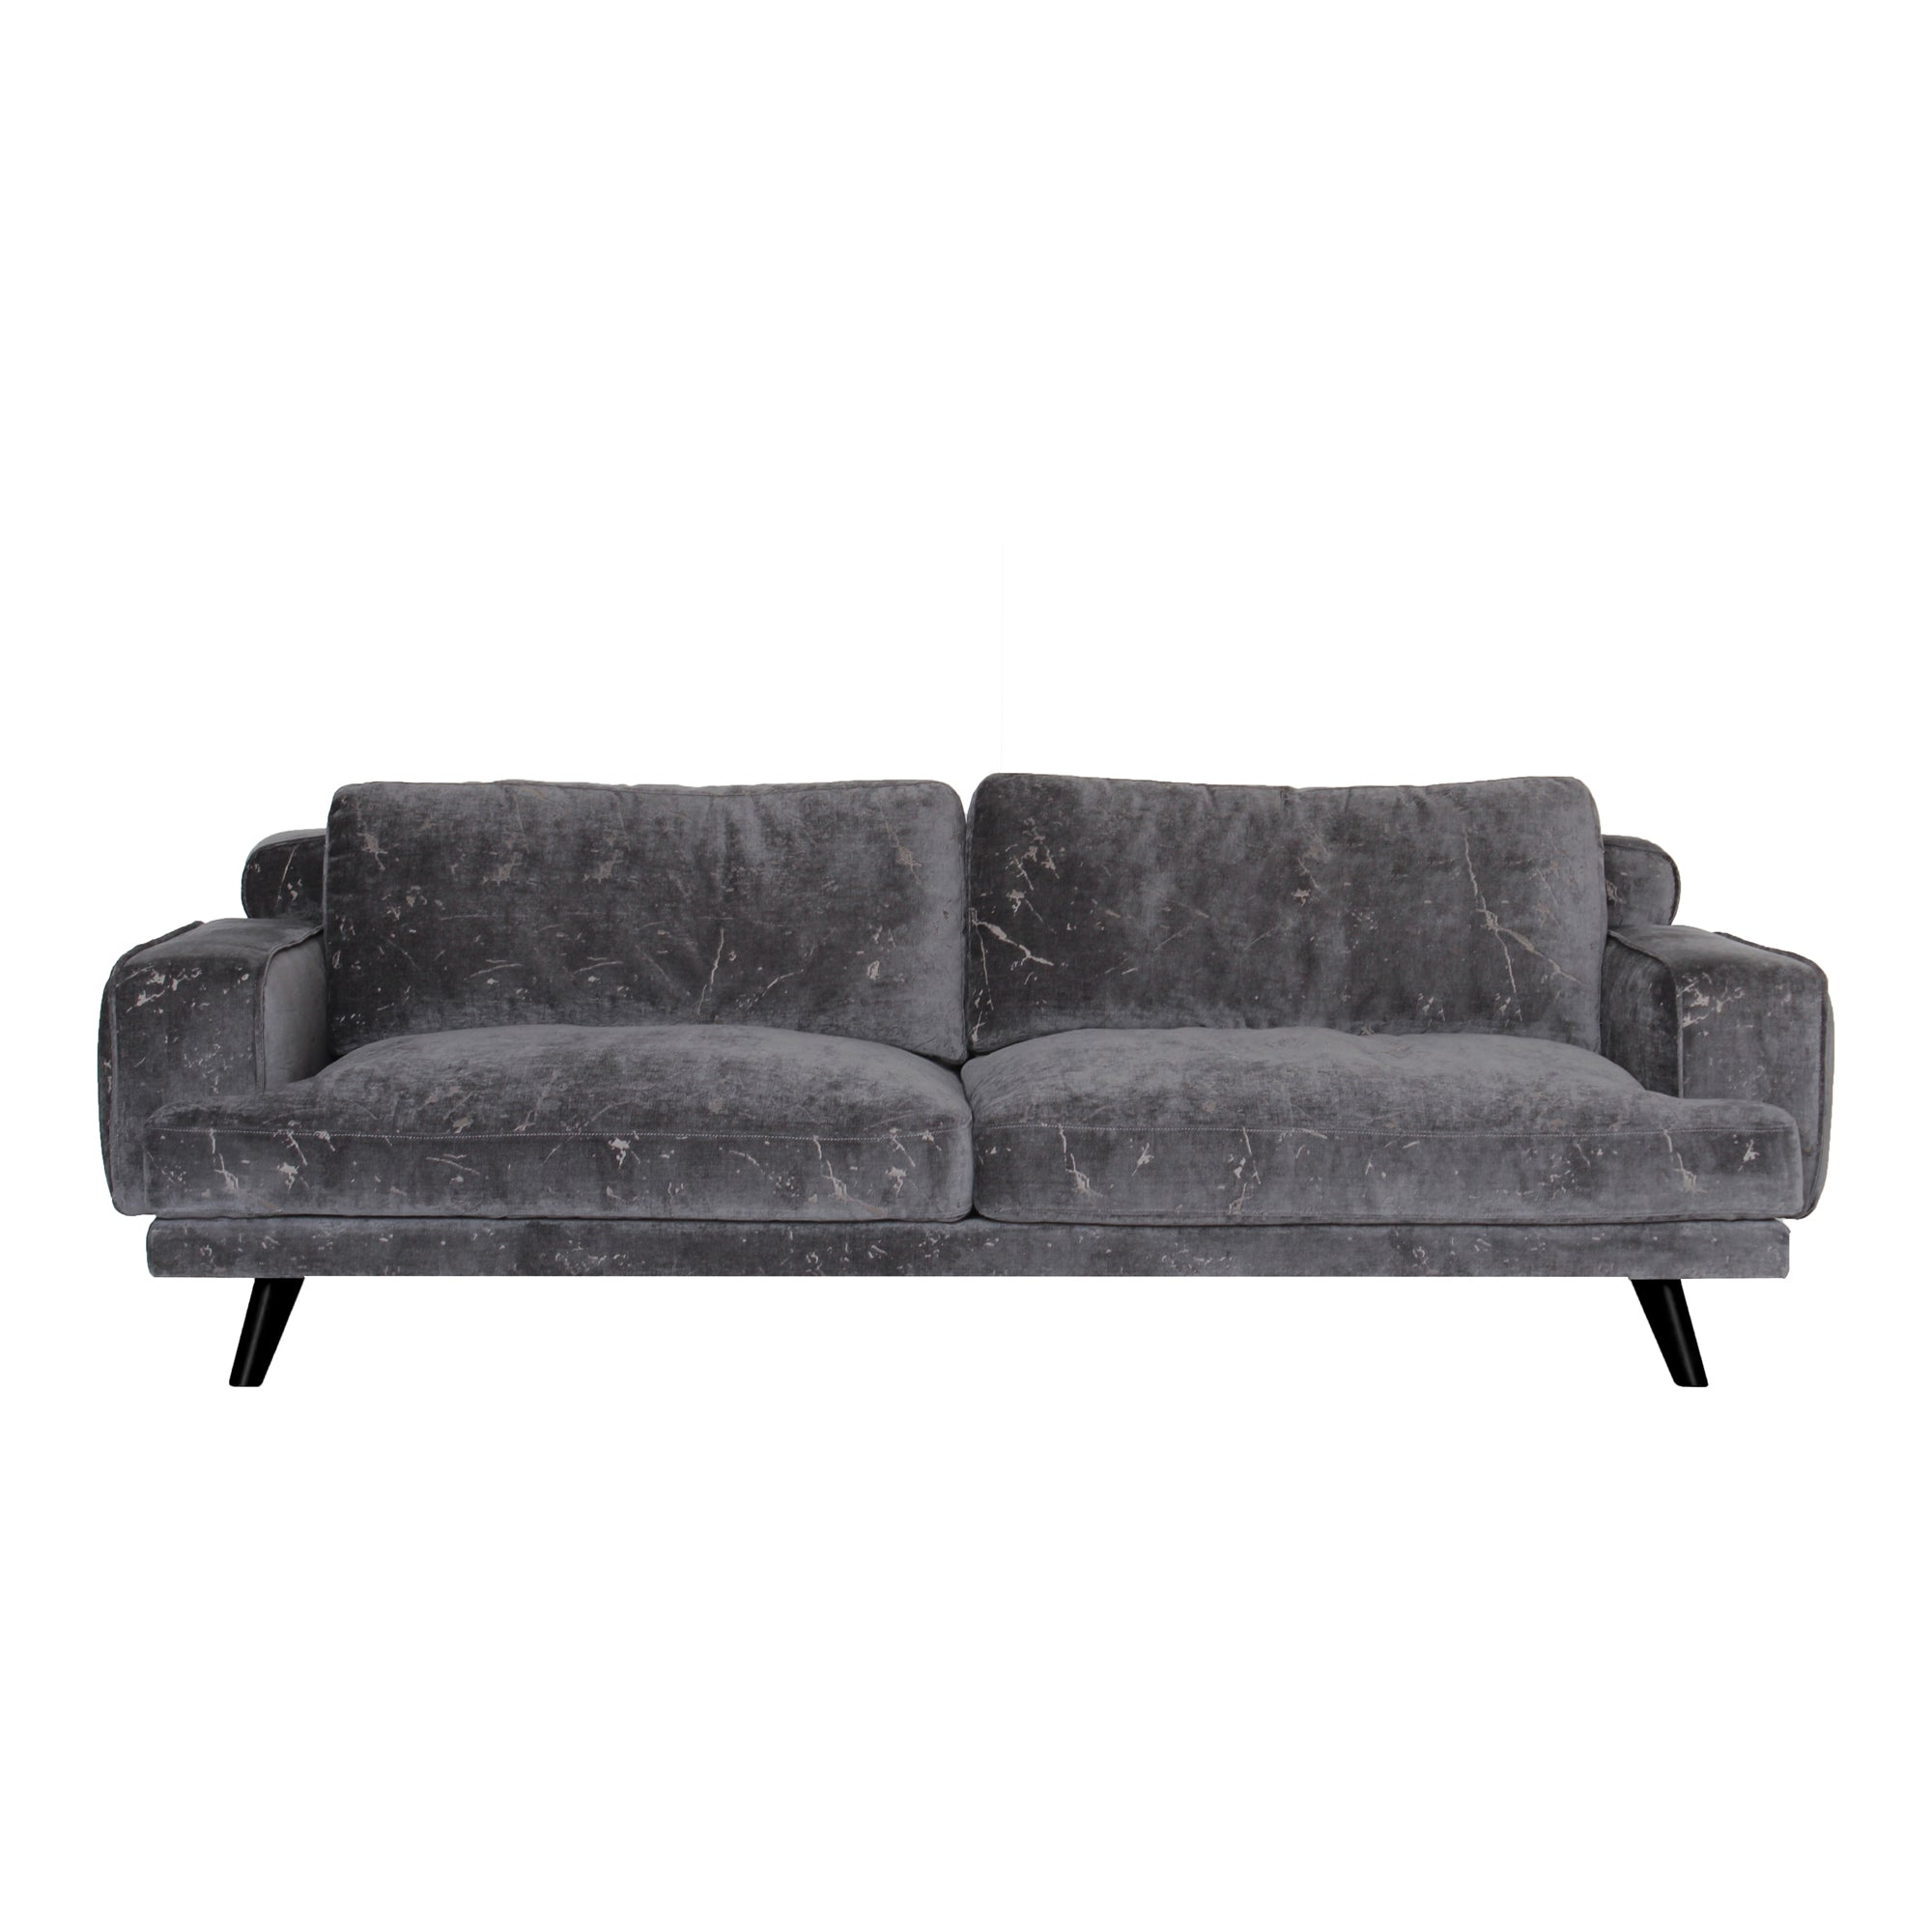 Sofas Loveseats At Contemporary Furniture Warehouse